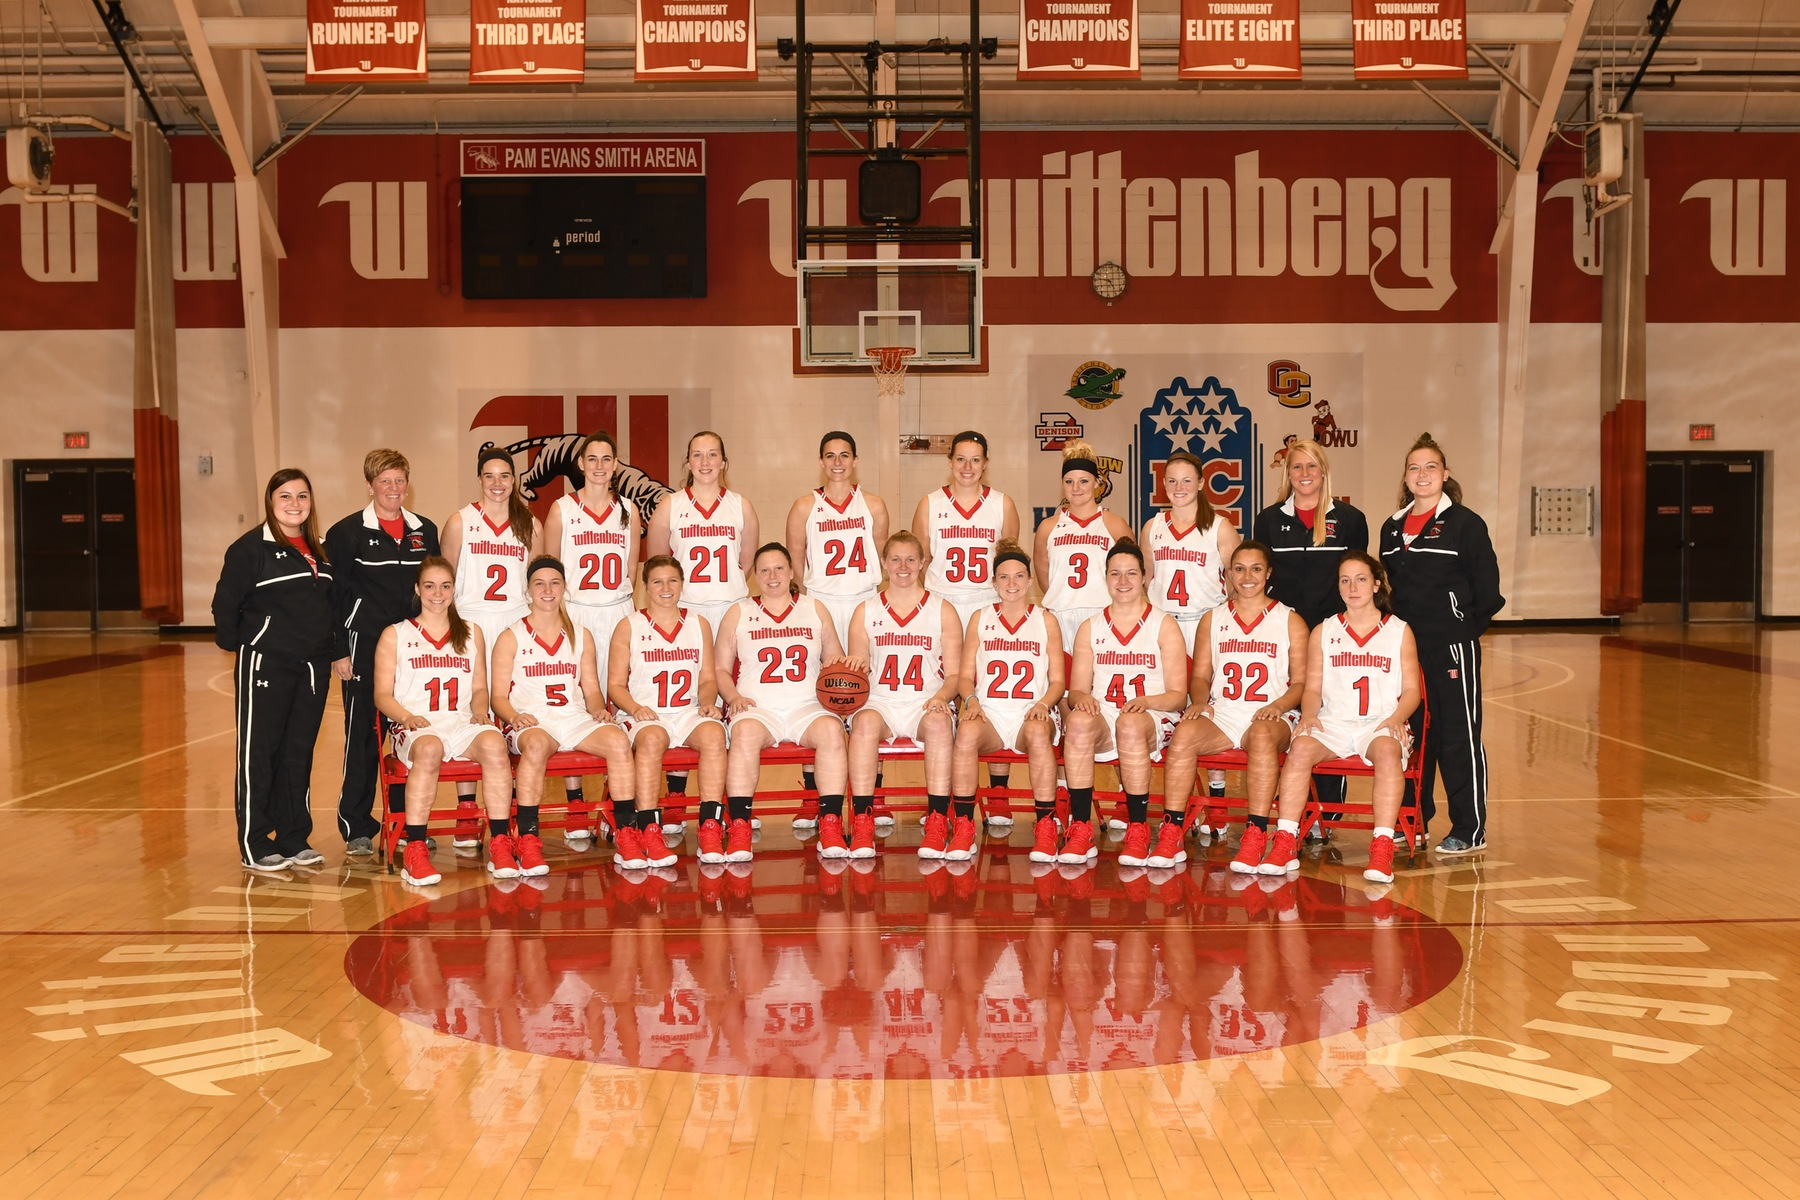 2017-18 Wittenberg Women's Basketball